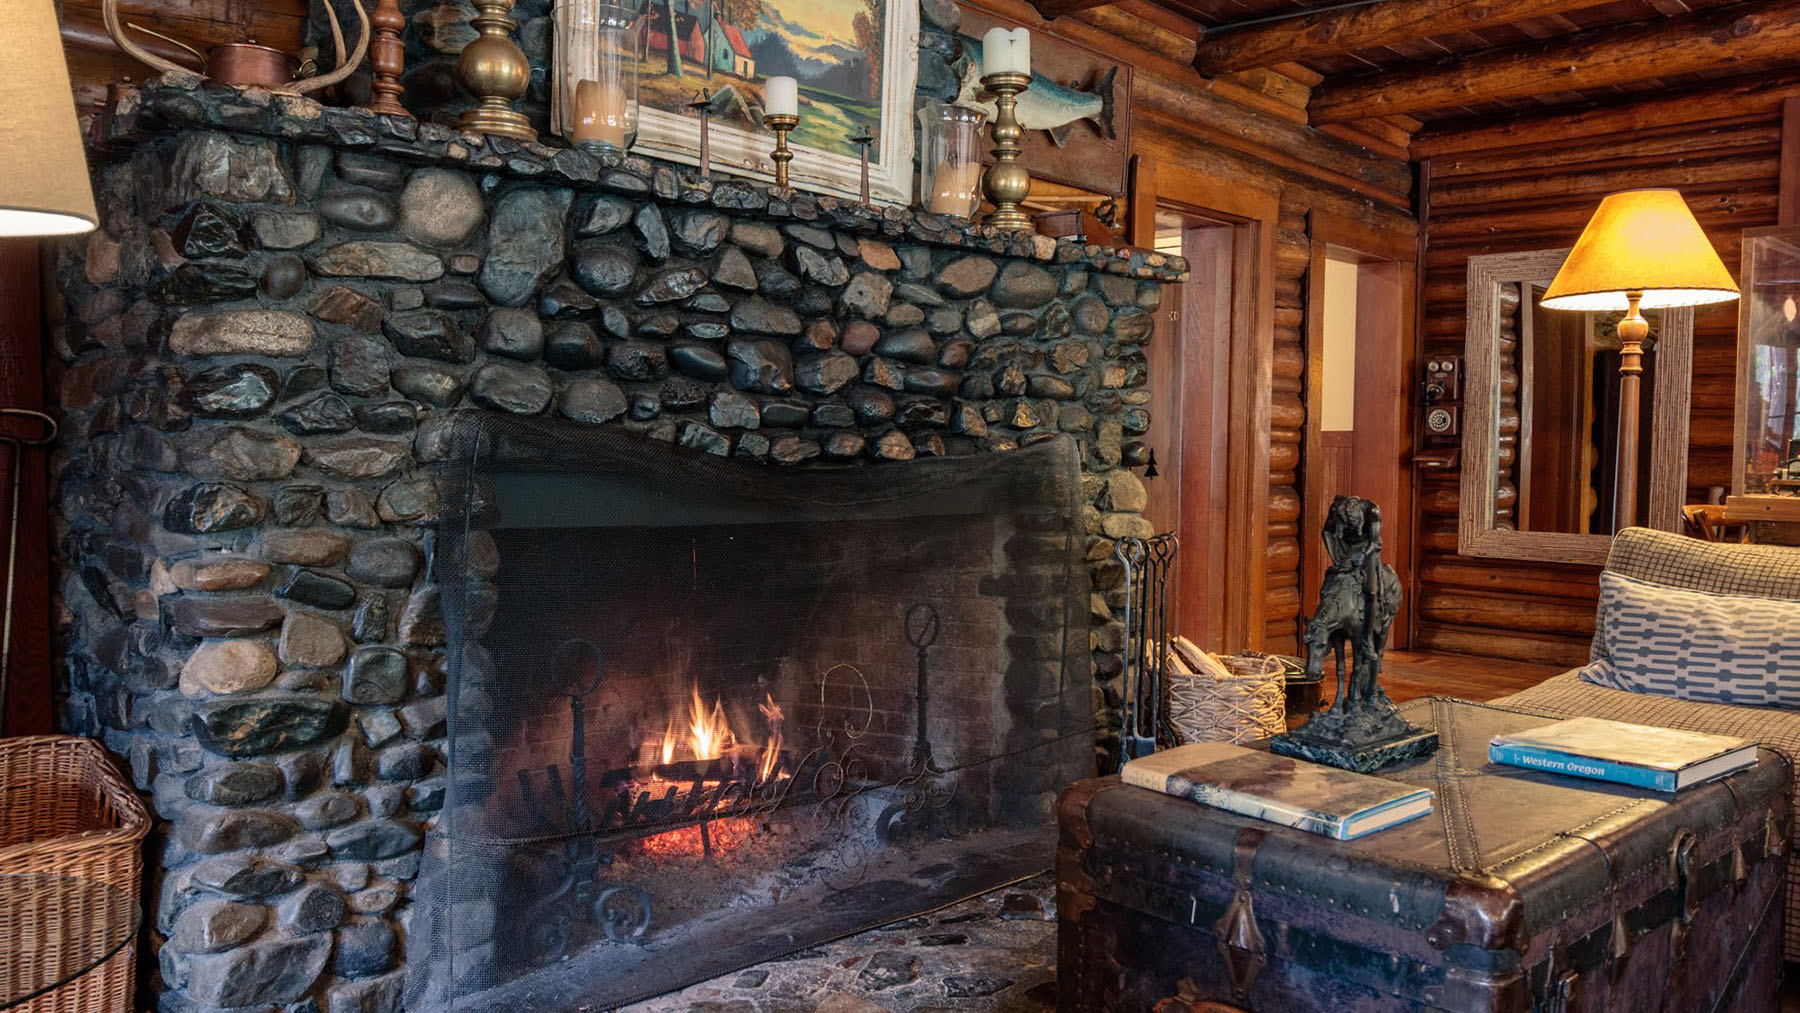 The main Lodge Fireplace